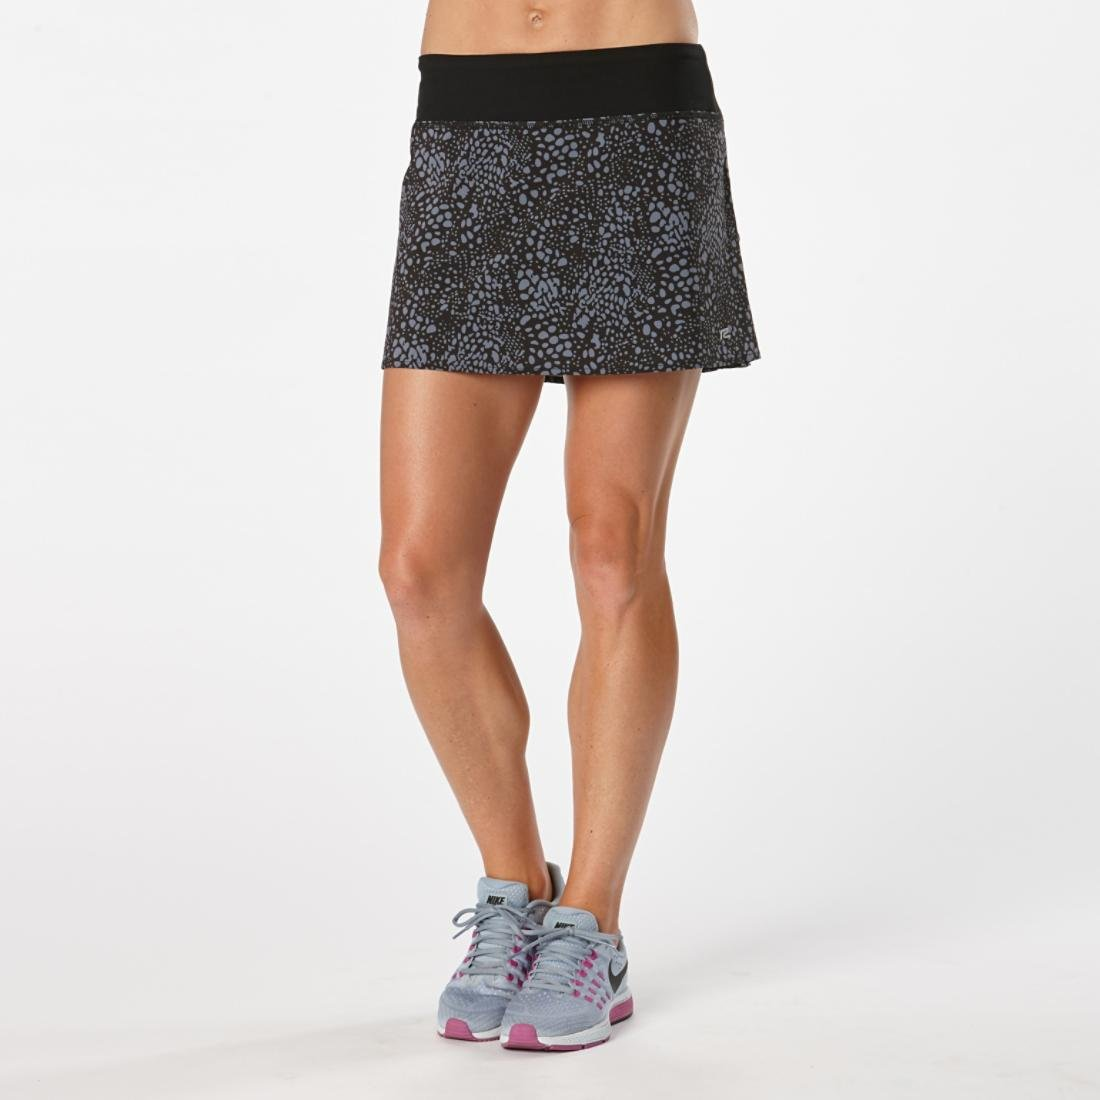 Women's R-Gear School 'em Printed Skort, Black/Grey Mist Dot, Large